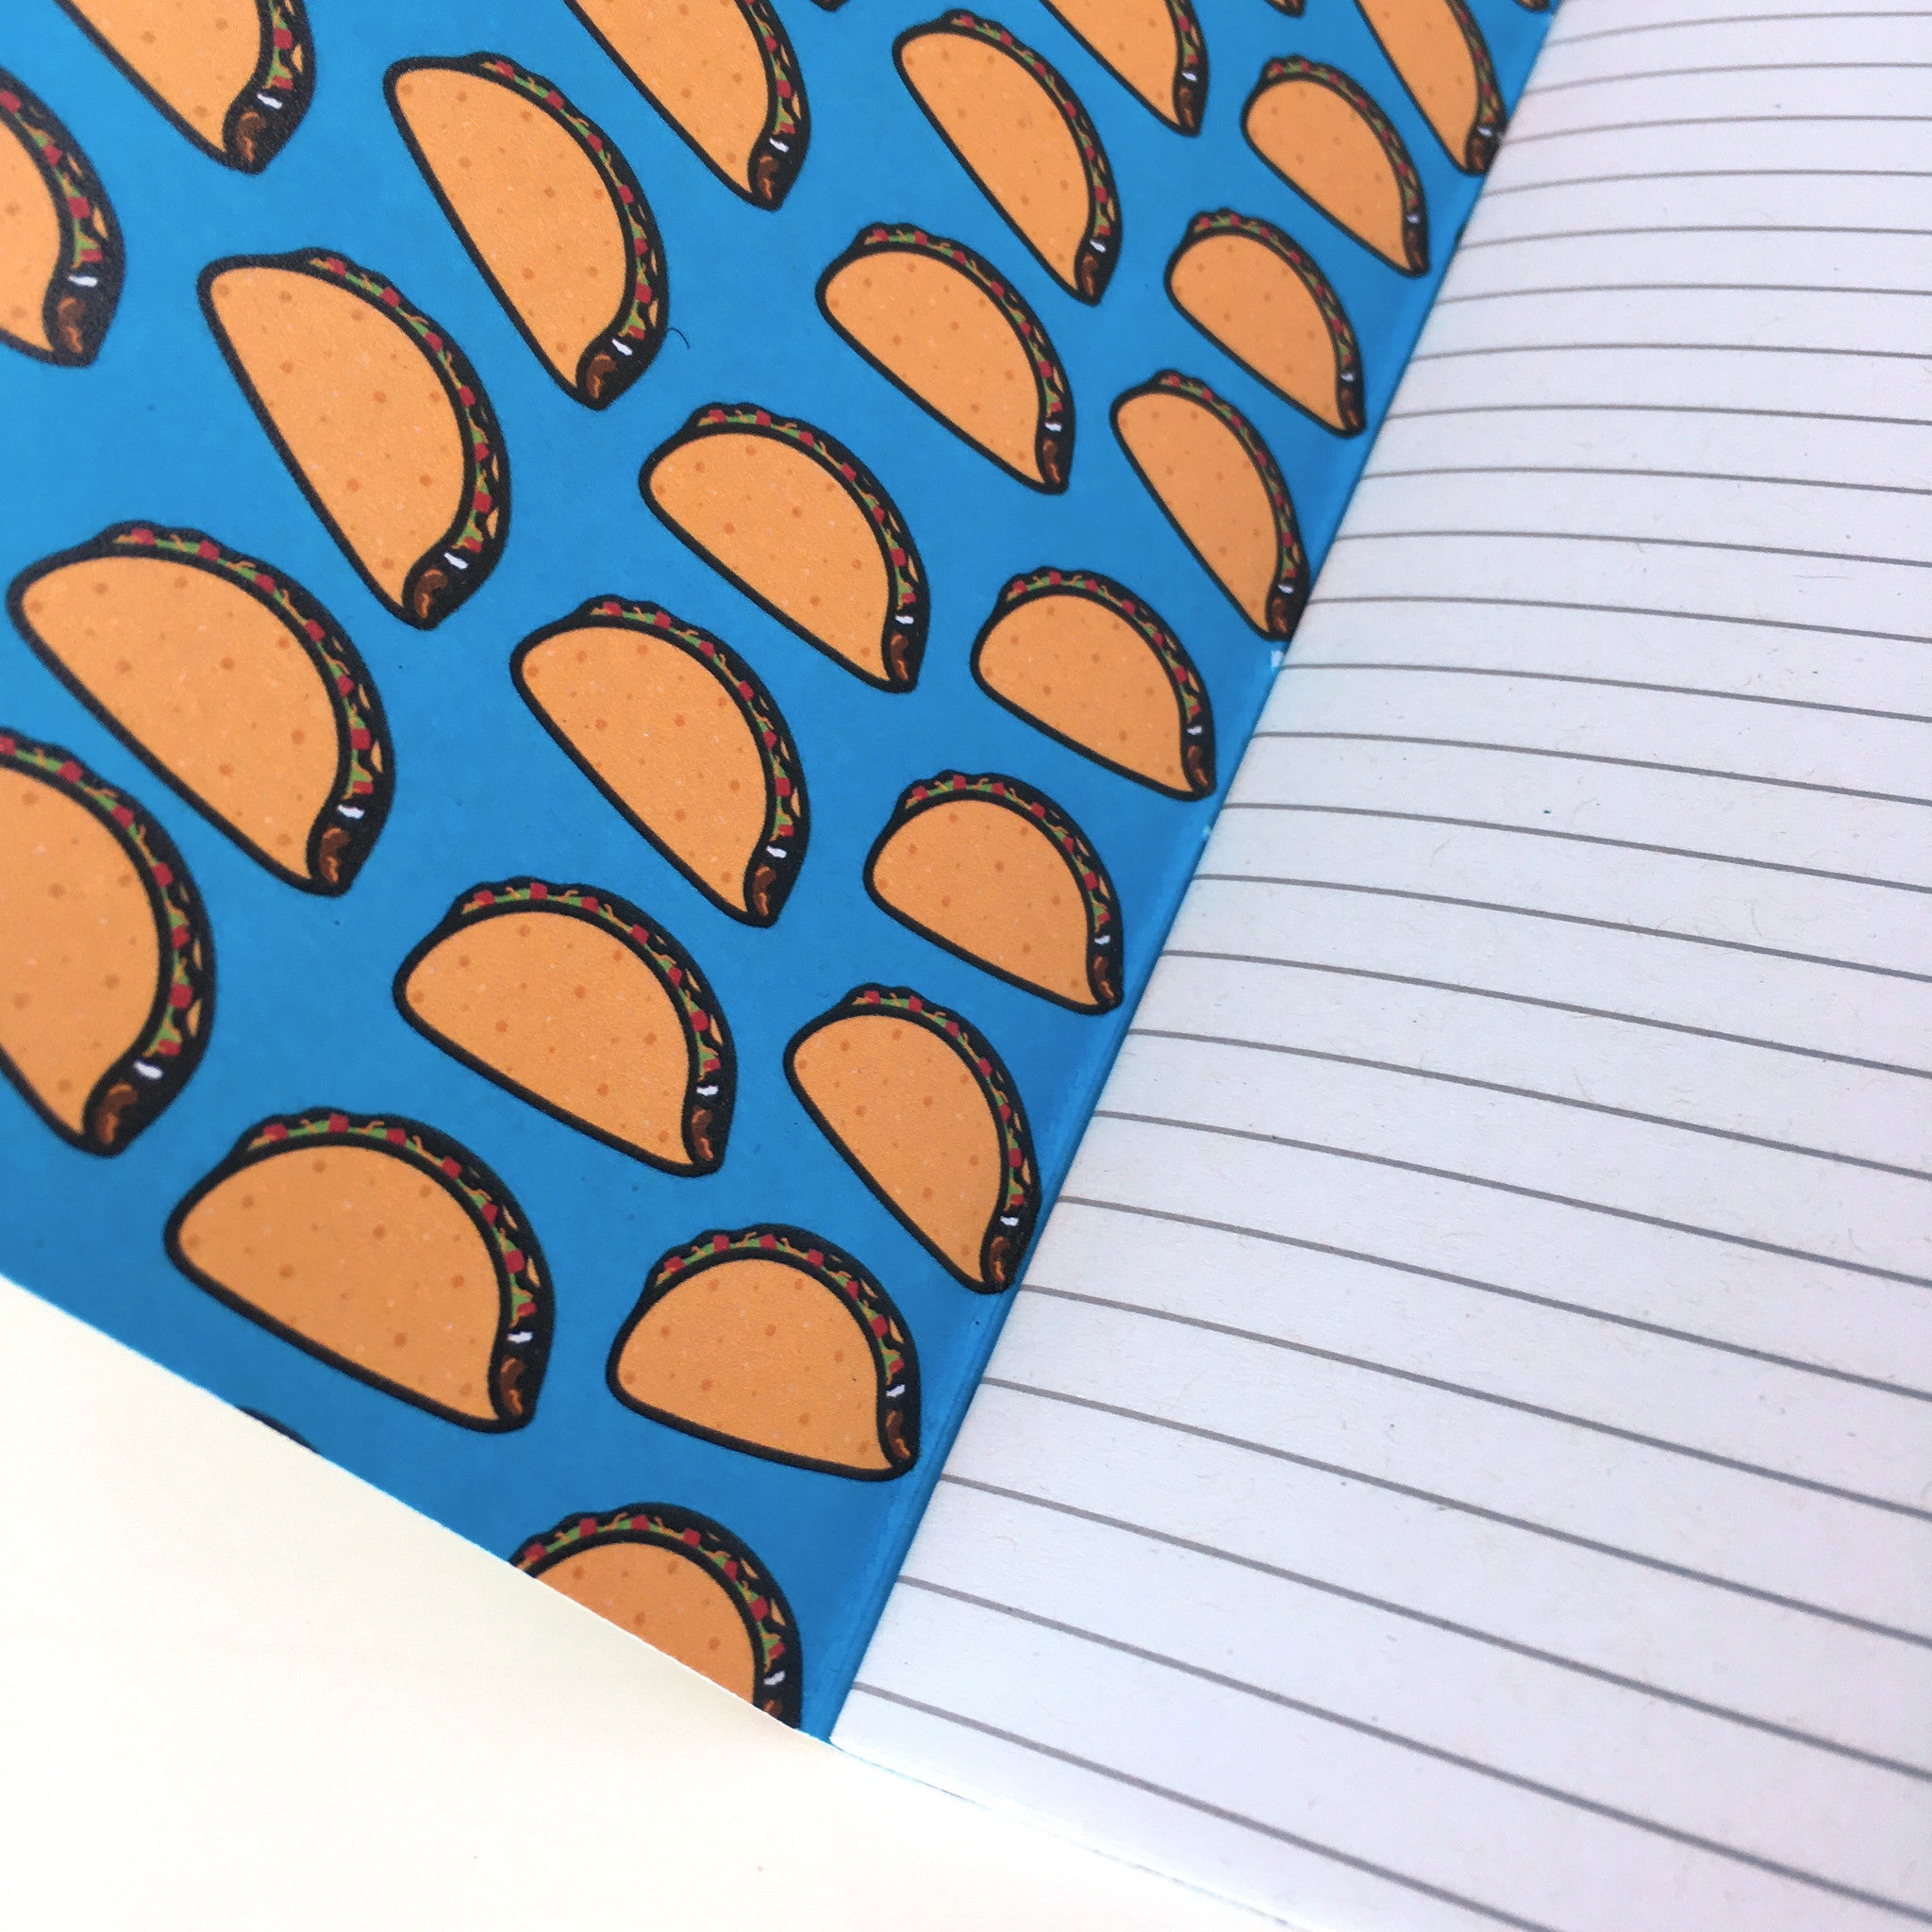 Avocado Notebook